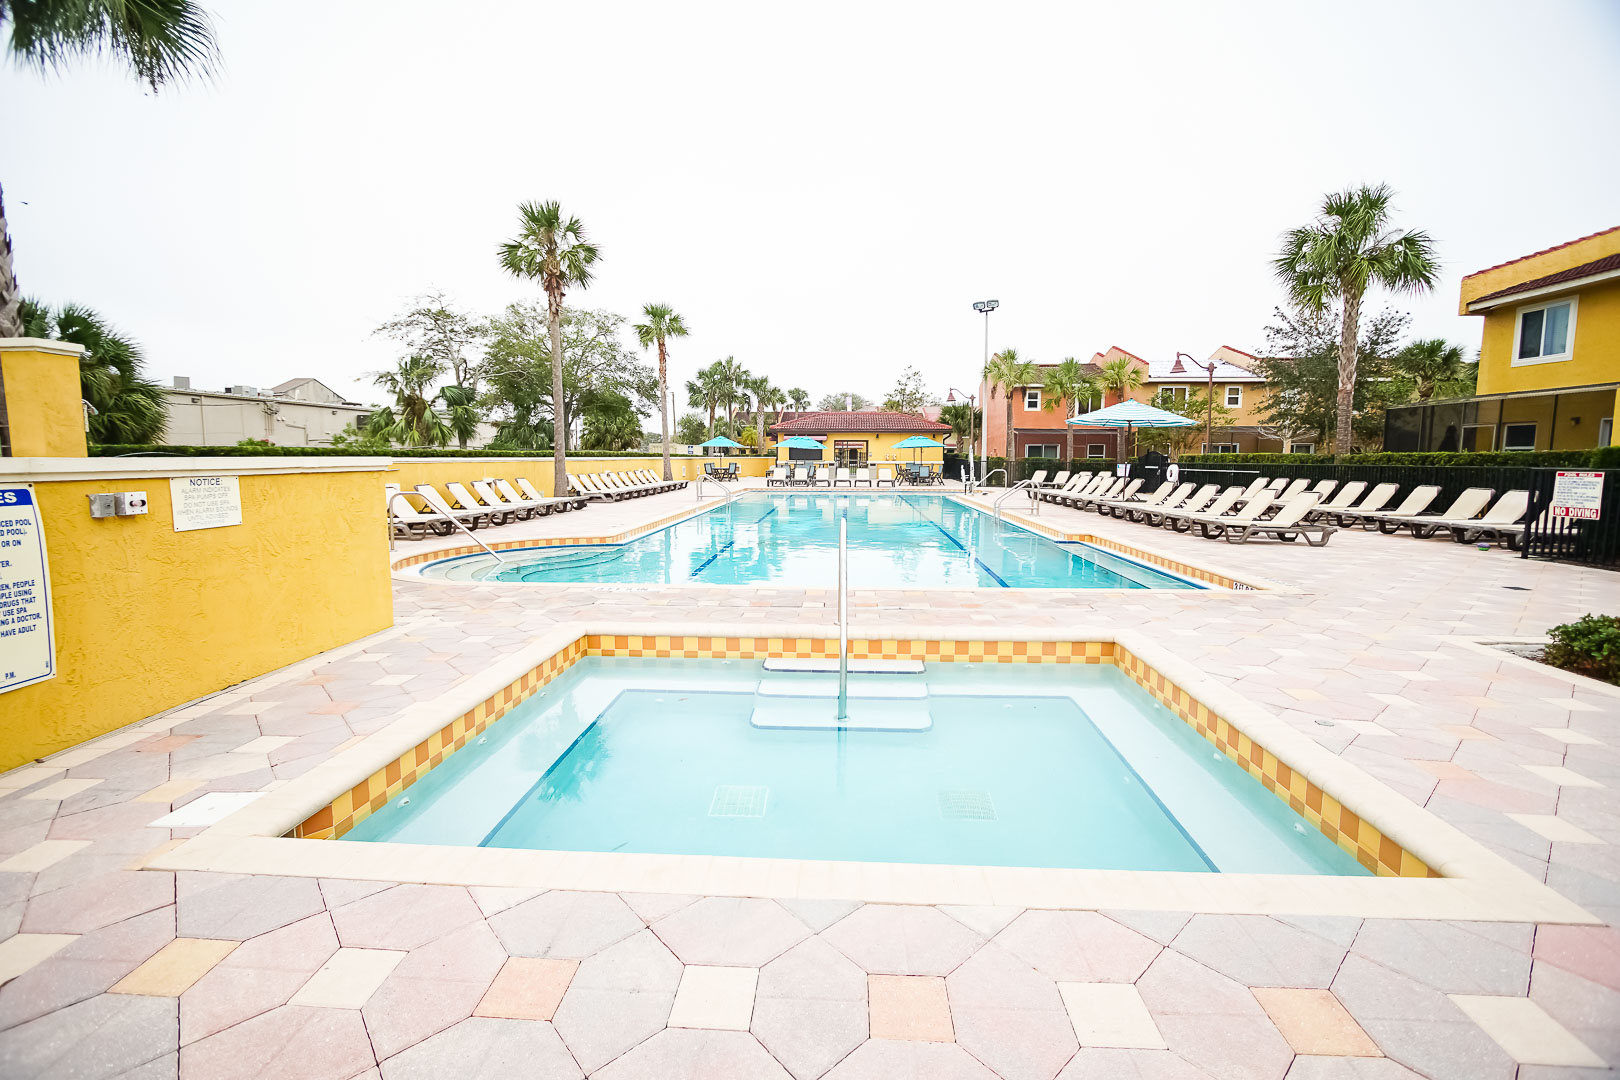 A vast view of the outdoor swimming pool and jacuzzi at VRI's Fantasy World Resort in Florida.